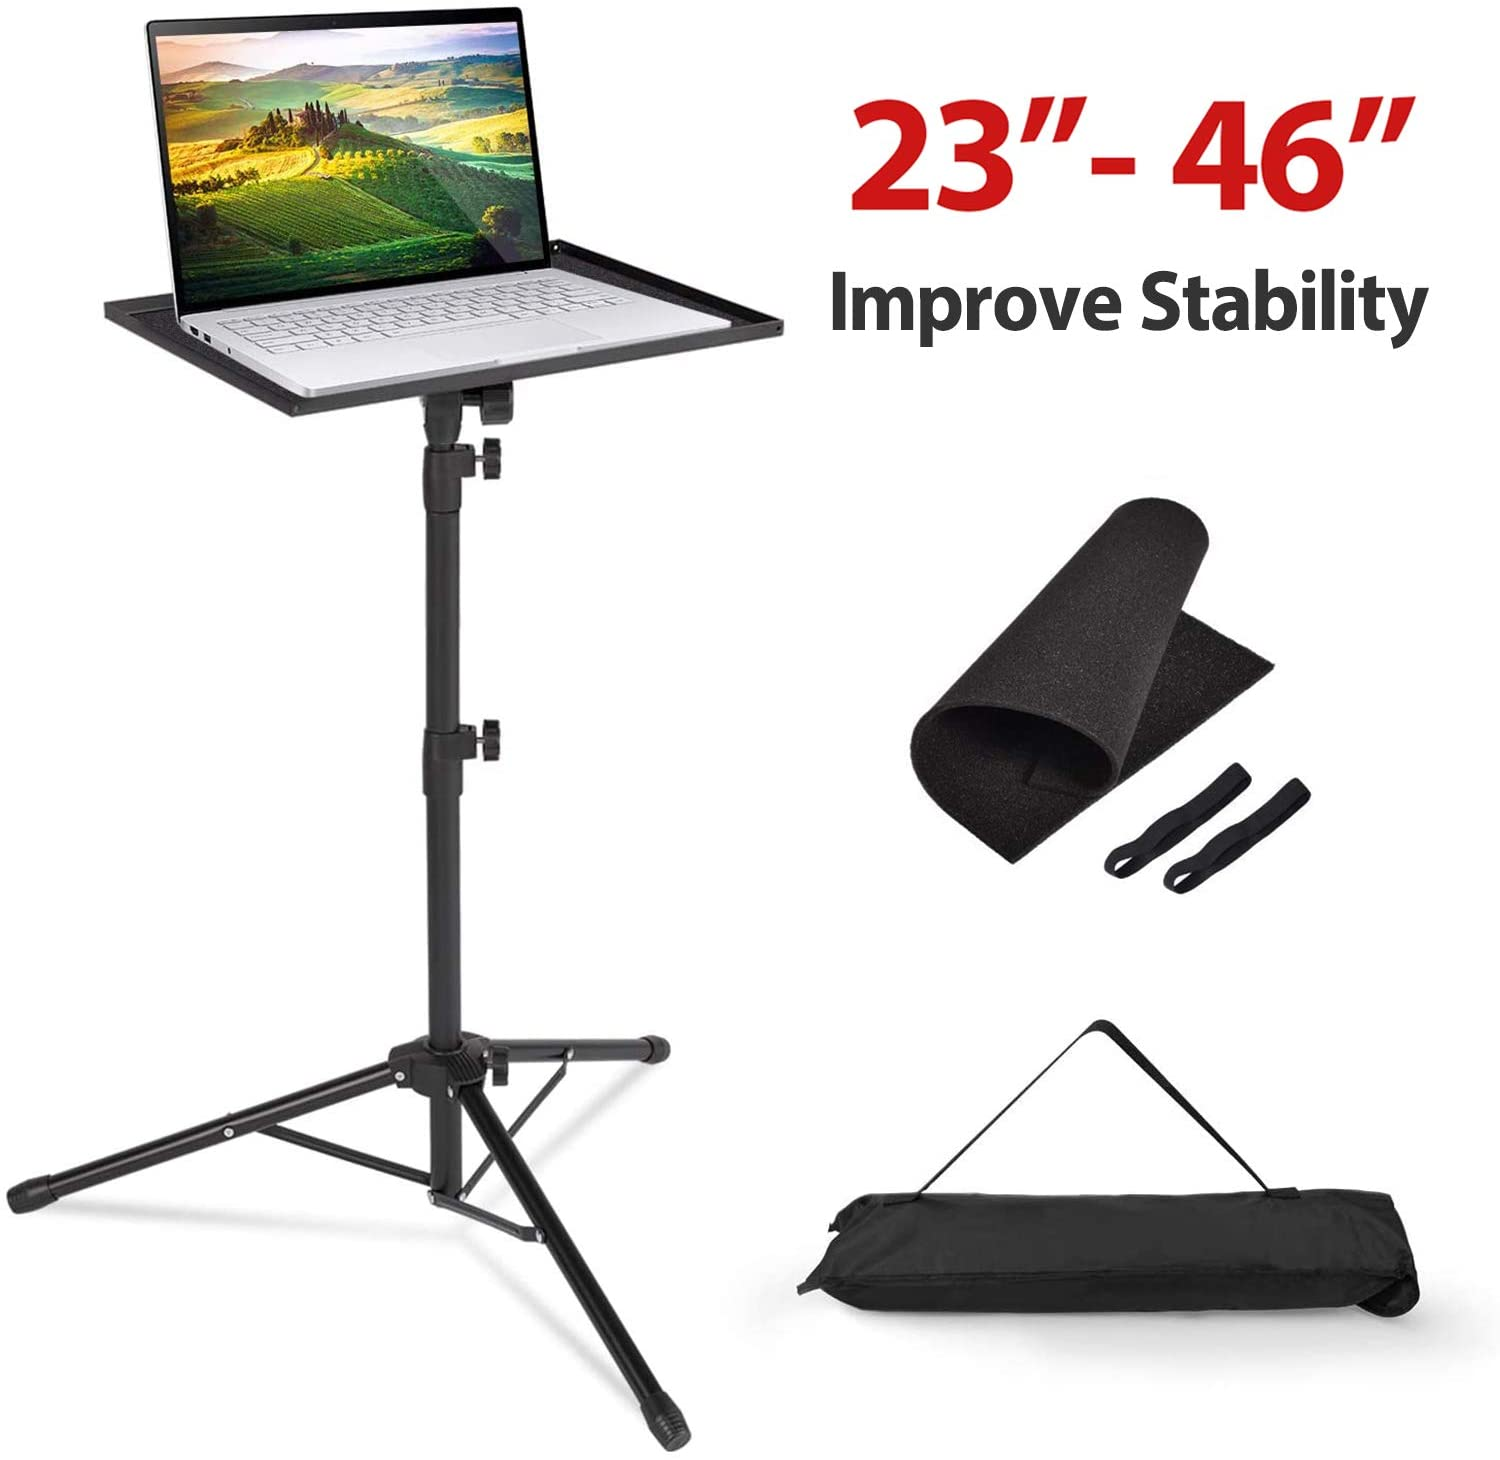 Klvied Projector Tripod Stand, Universal Laptop Tripod Stand, Portable DJ Equipment Stand, Folding Floor Tripod Stand, Outdoor Computer Table Stand For Stage or Studio, Height Adjustable 23 to 46 Inch